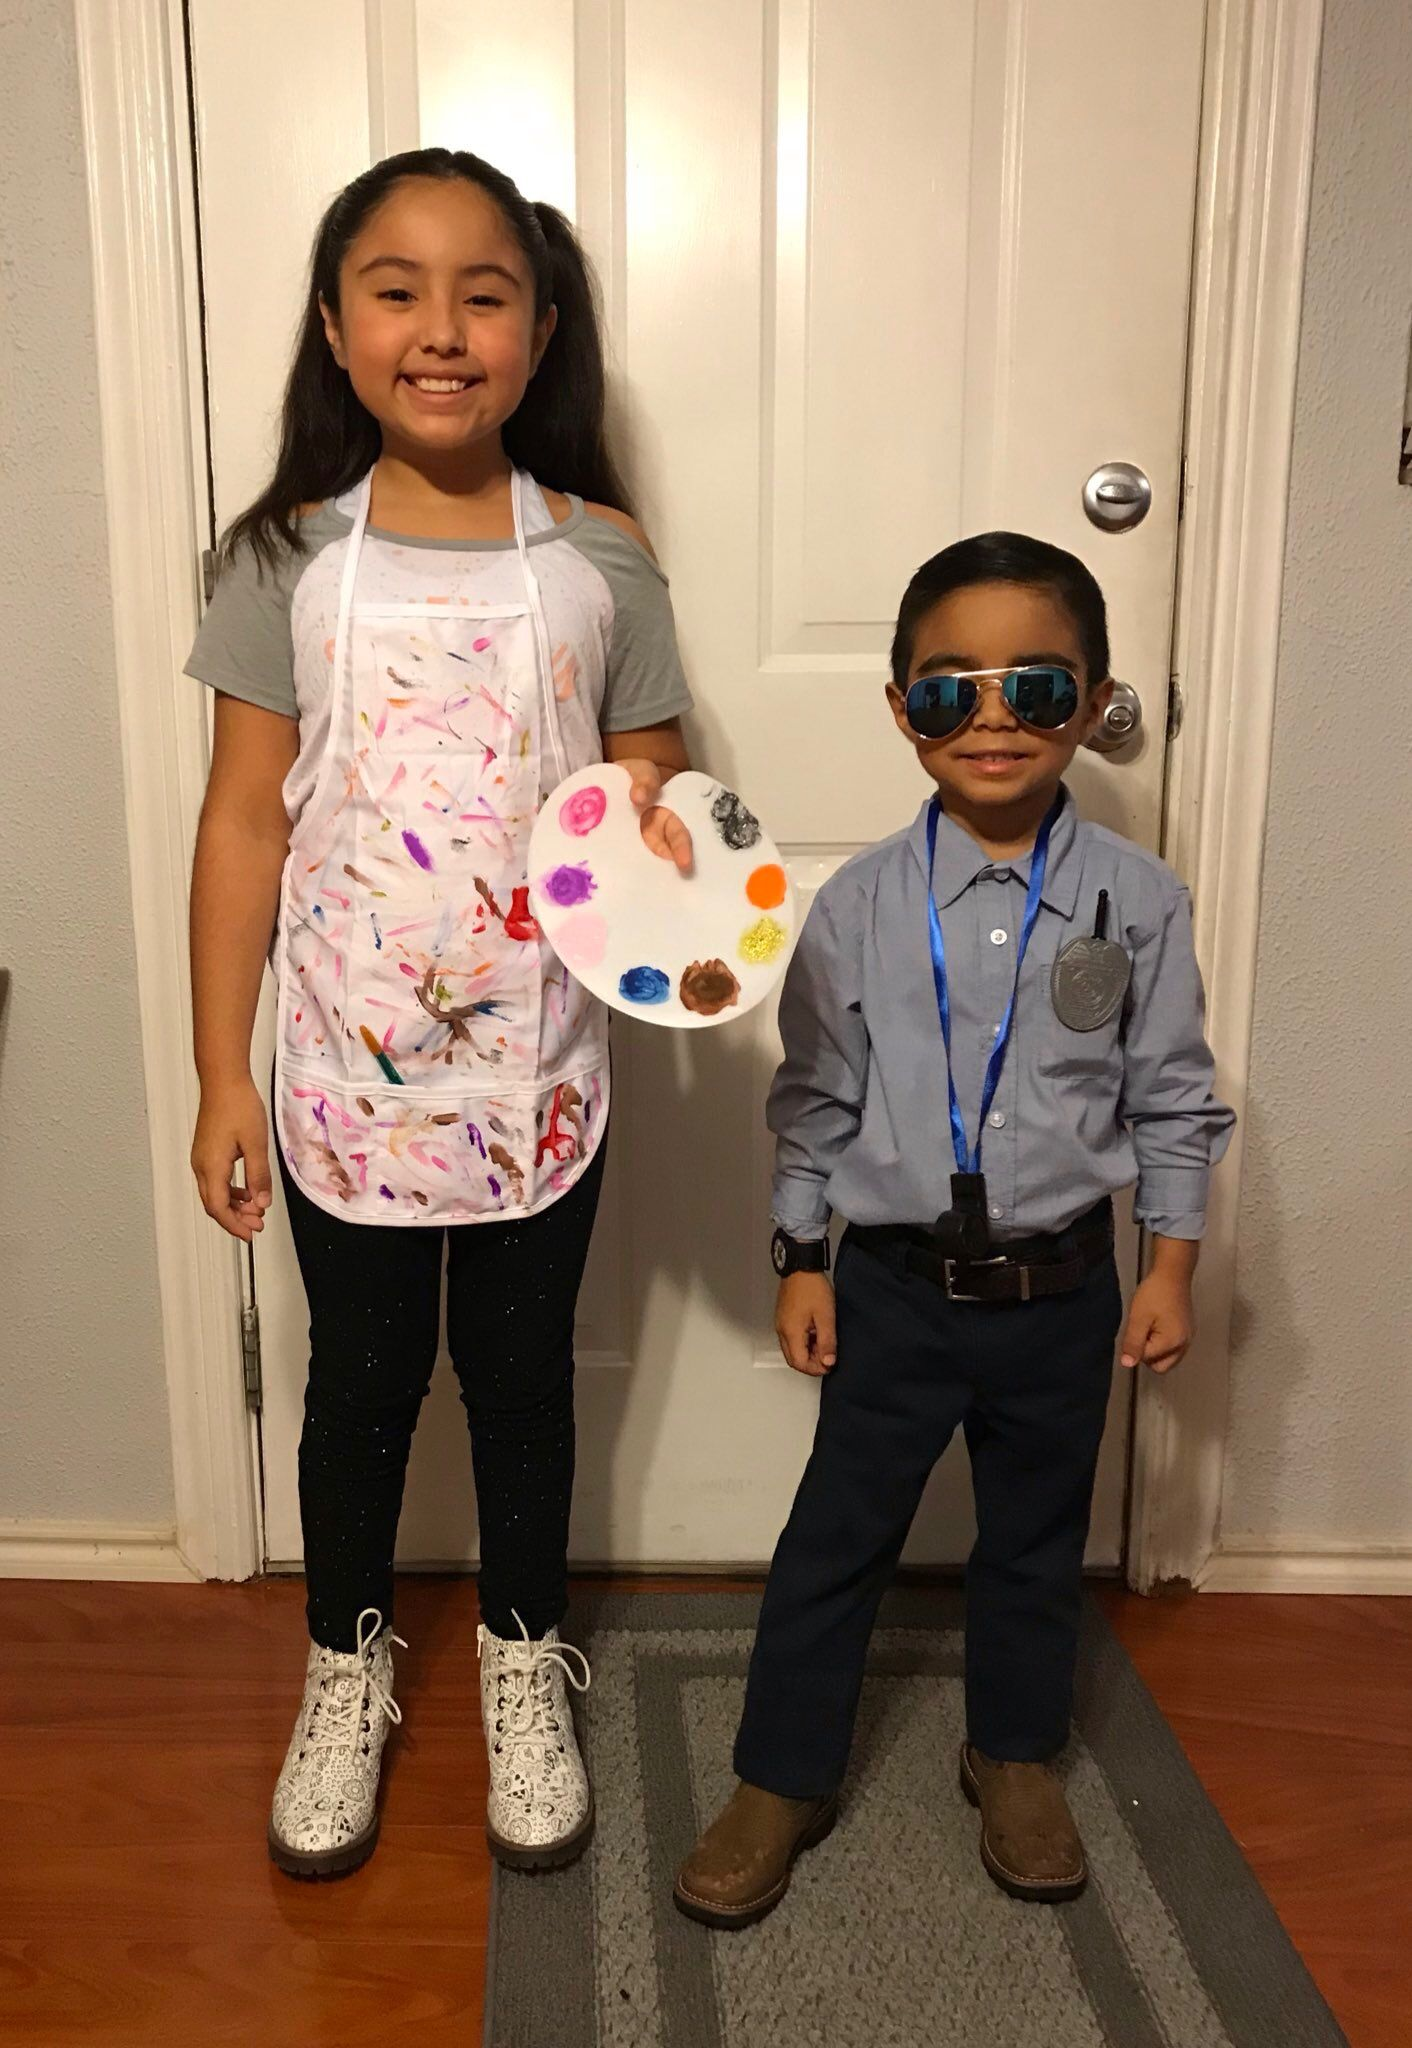 Career day dress up artist copdetective day dresses